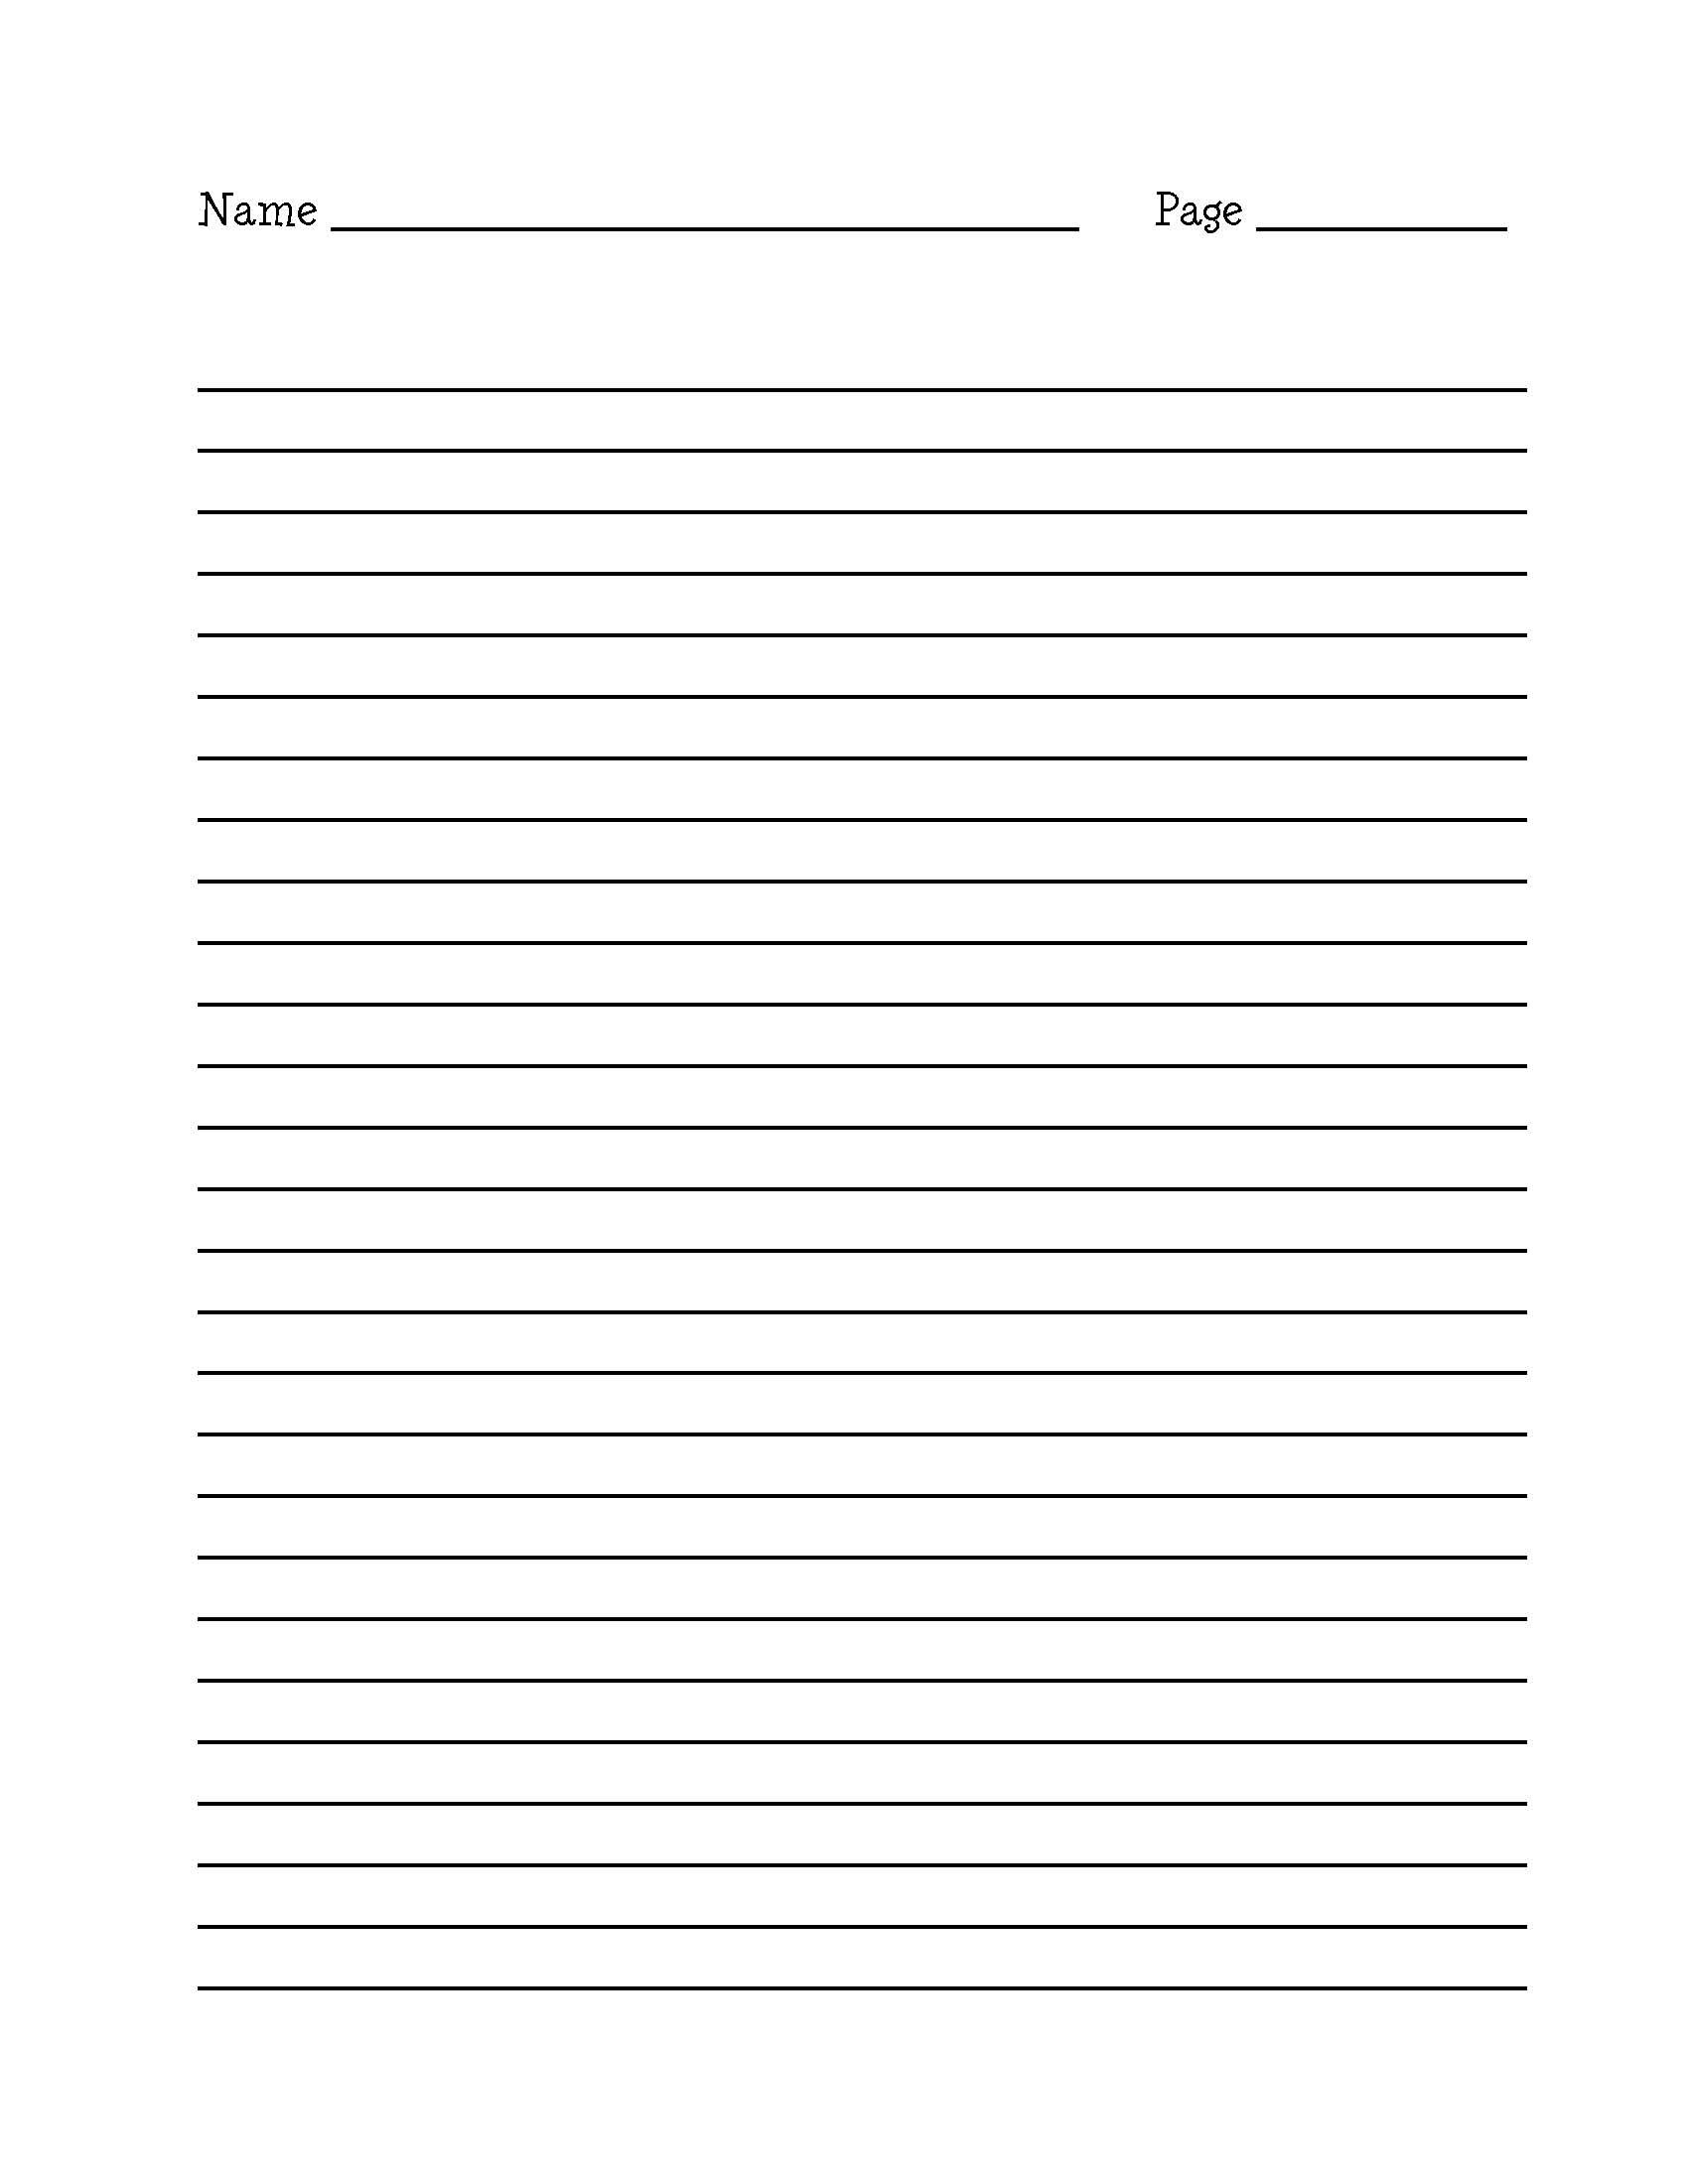 Blank Editable Lined Paper Template Word Pdf | Lined Paper Template - Free Printable Binder Paper